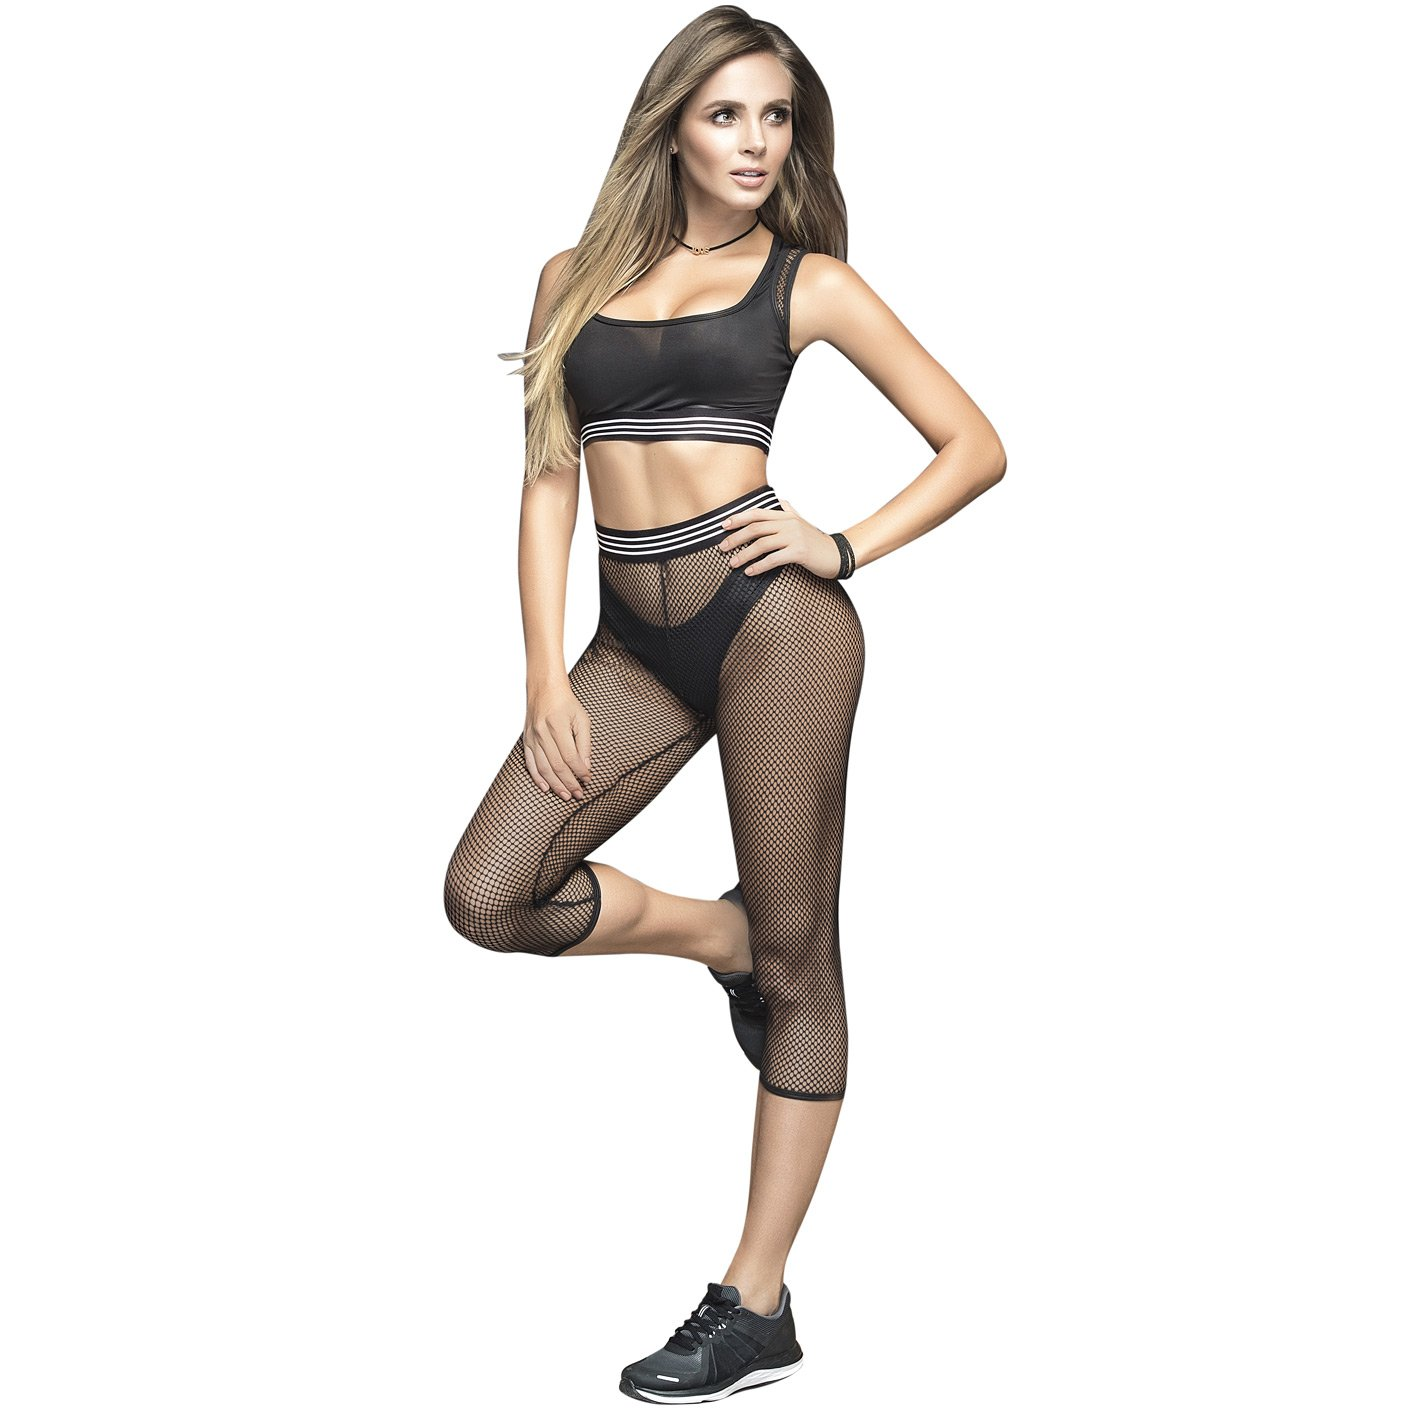 Amazon.com: Mapalé 2/3 Piece Set Athletic Sexy Underwear for Women Ropa Intima Para Mujer: Clothing